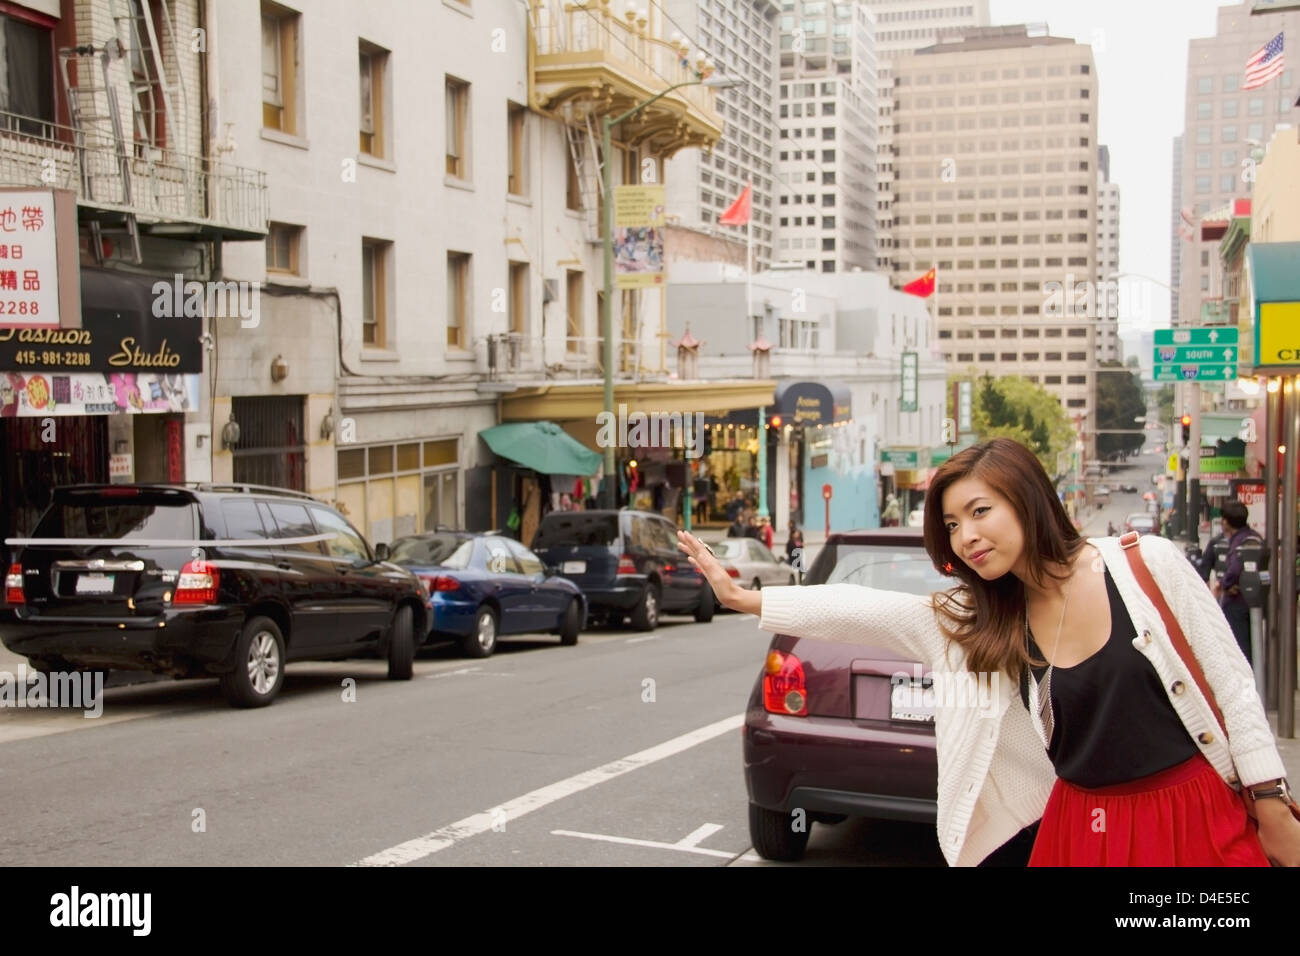 A woman on the side of the road hailing a cab; san francisco california united states of america - Stock Image